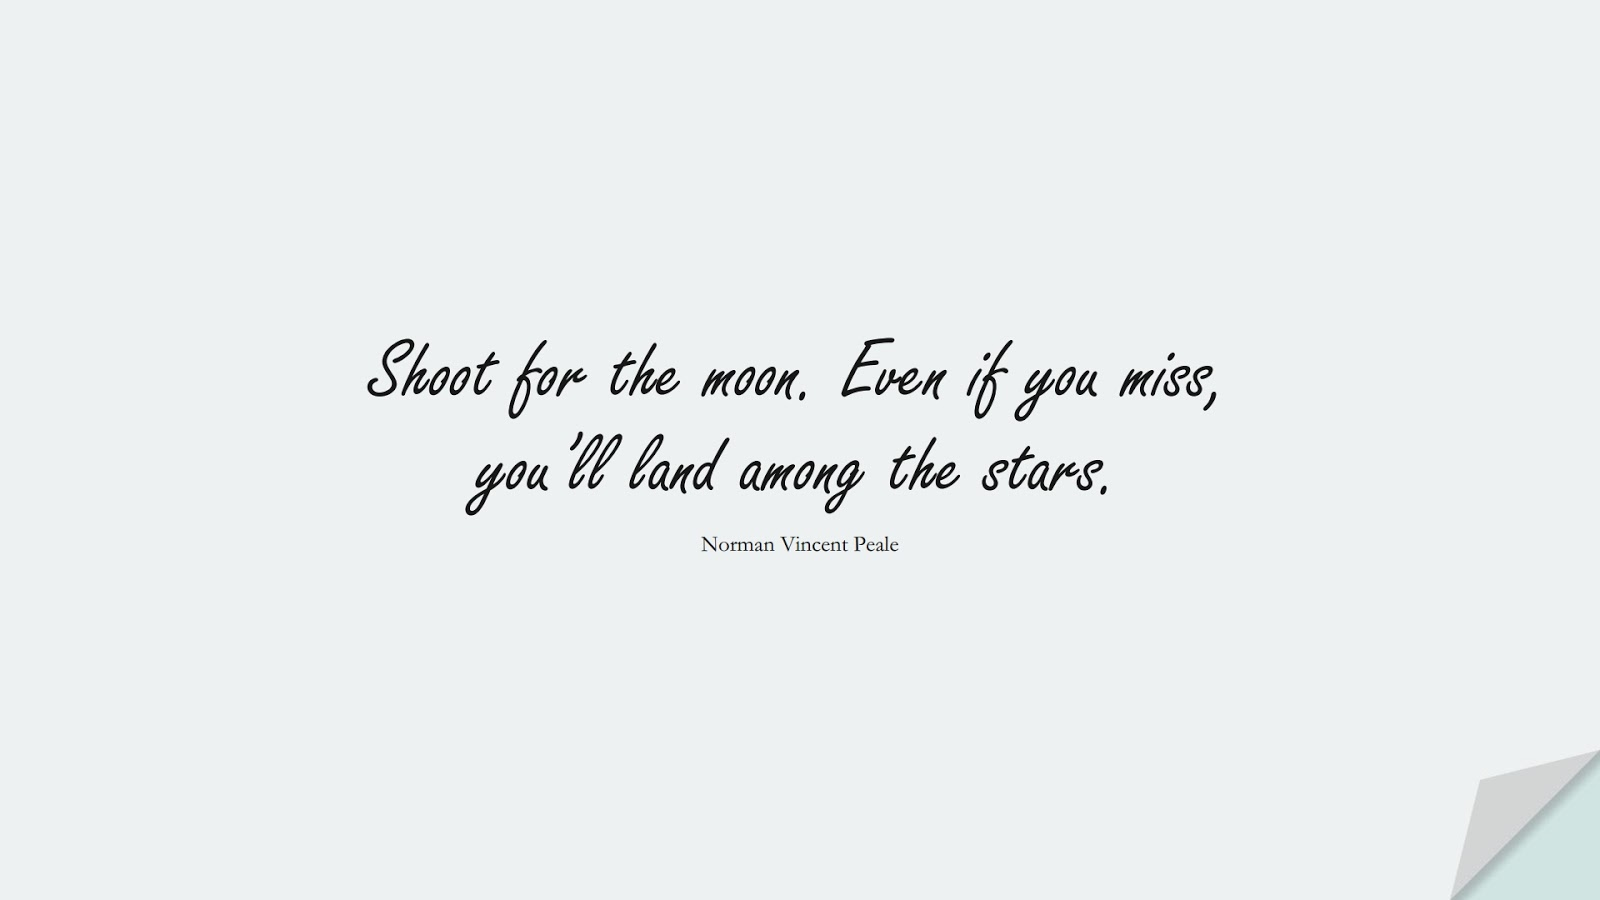 Shoot for the moon. Even if you miss, you'll land among the stars. (Norman Vincent Peale);  #HopeQuotes